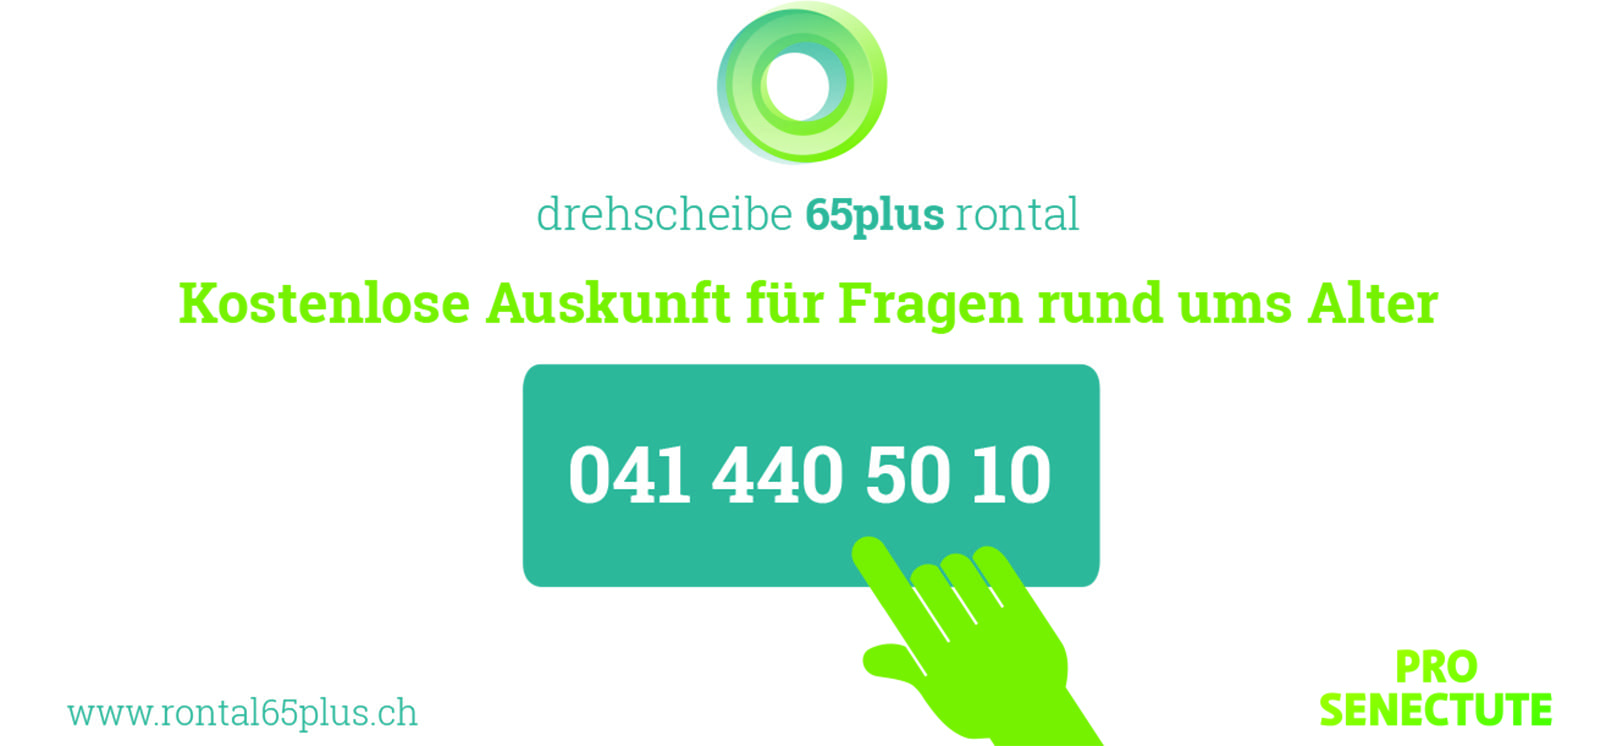 Drehscheibe 65plus Rontal